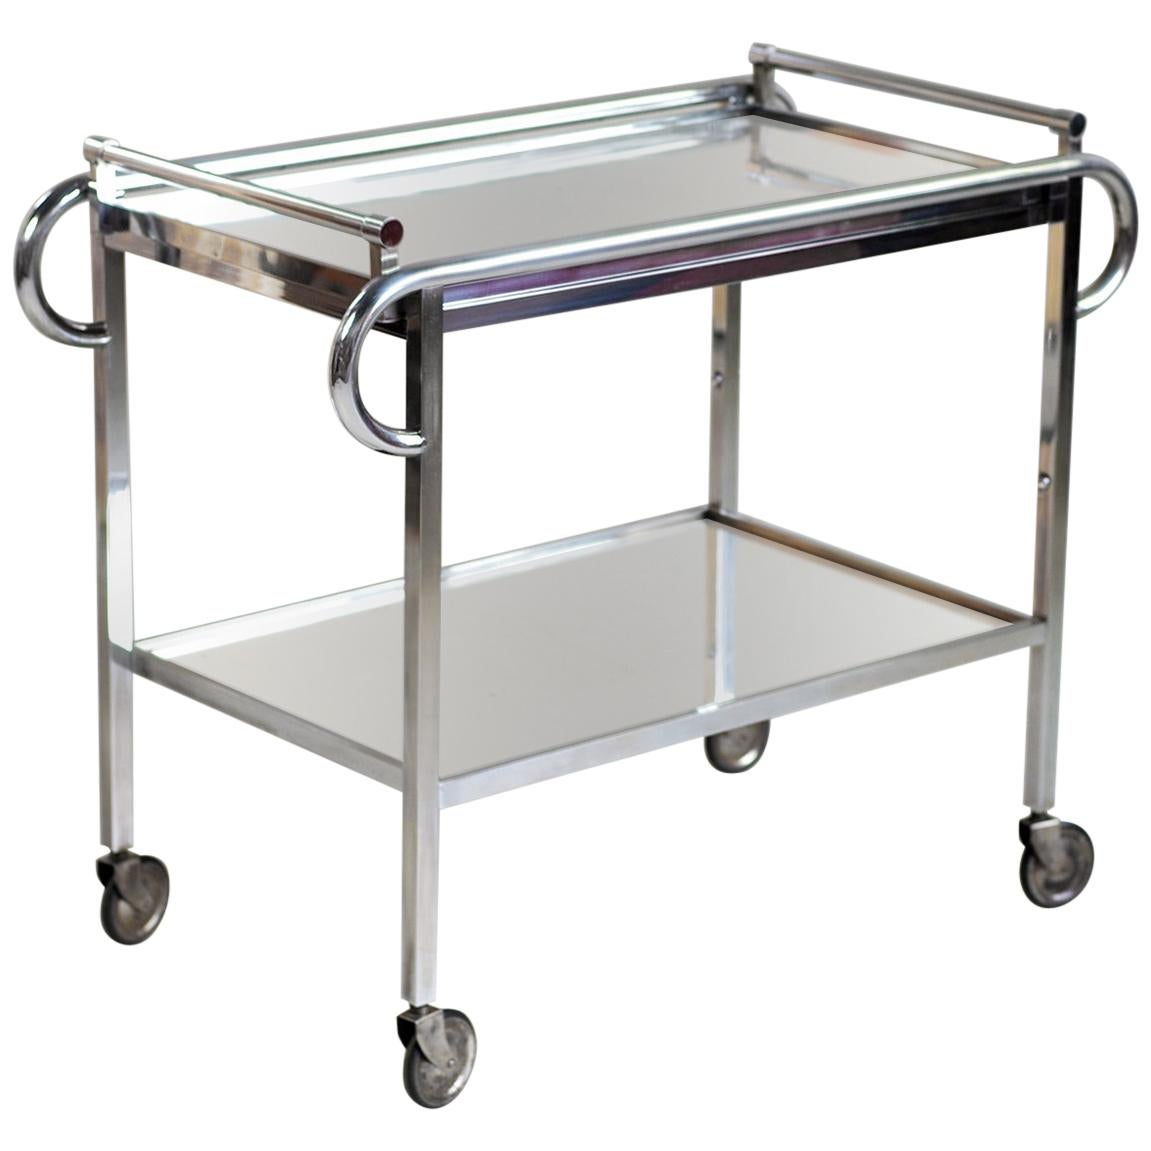 Jacques Adnet, Mirrored Bar Cart Trolley, France, 1930